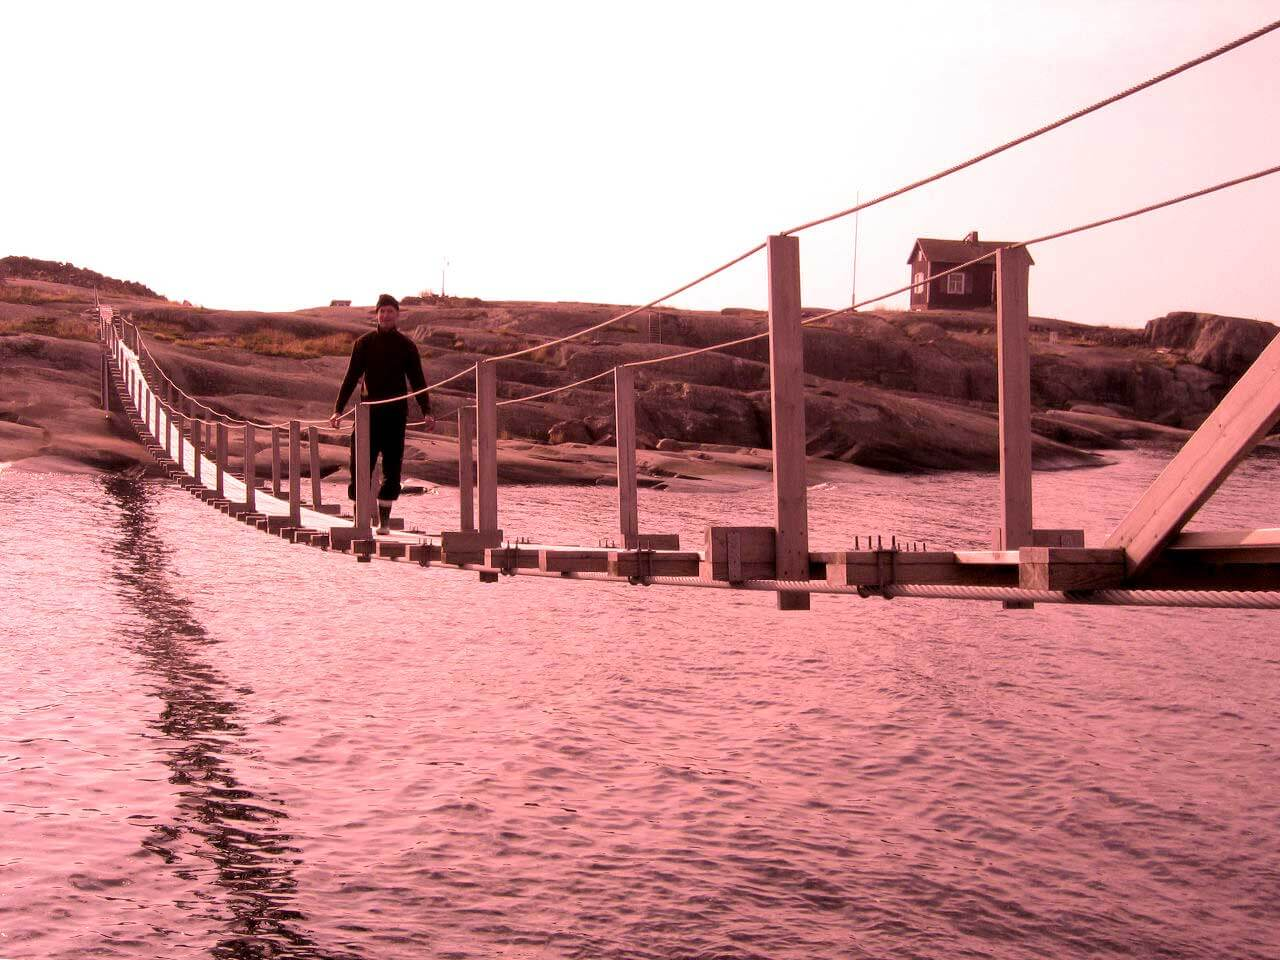 bridge over a river with red tint